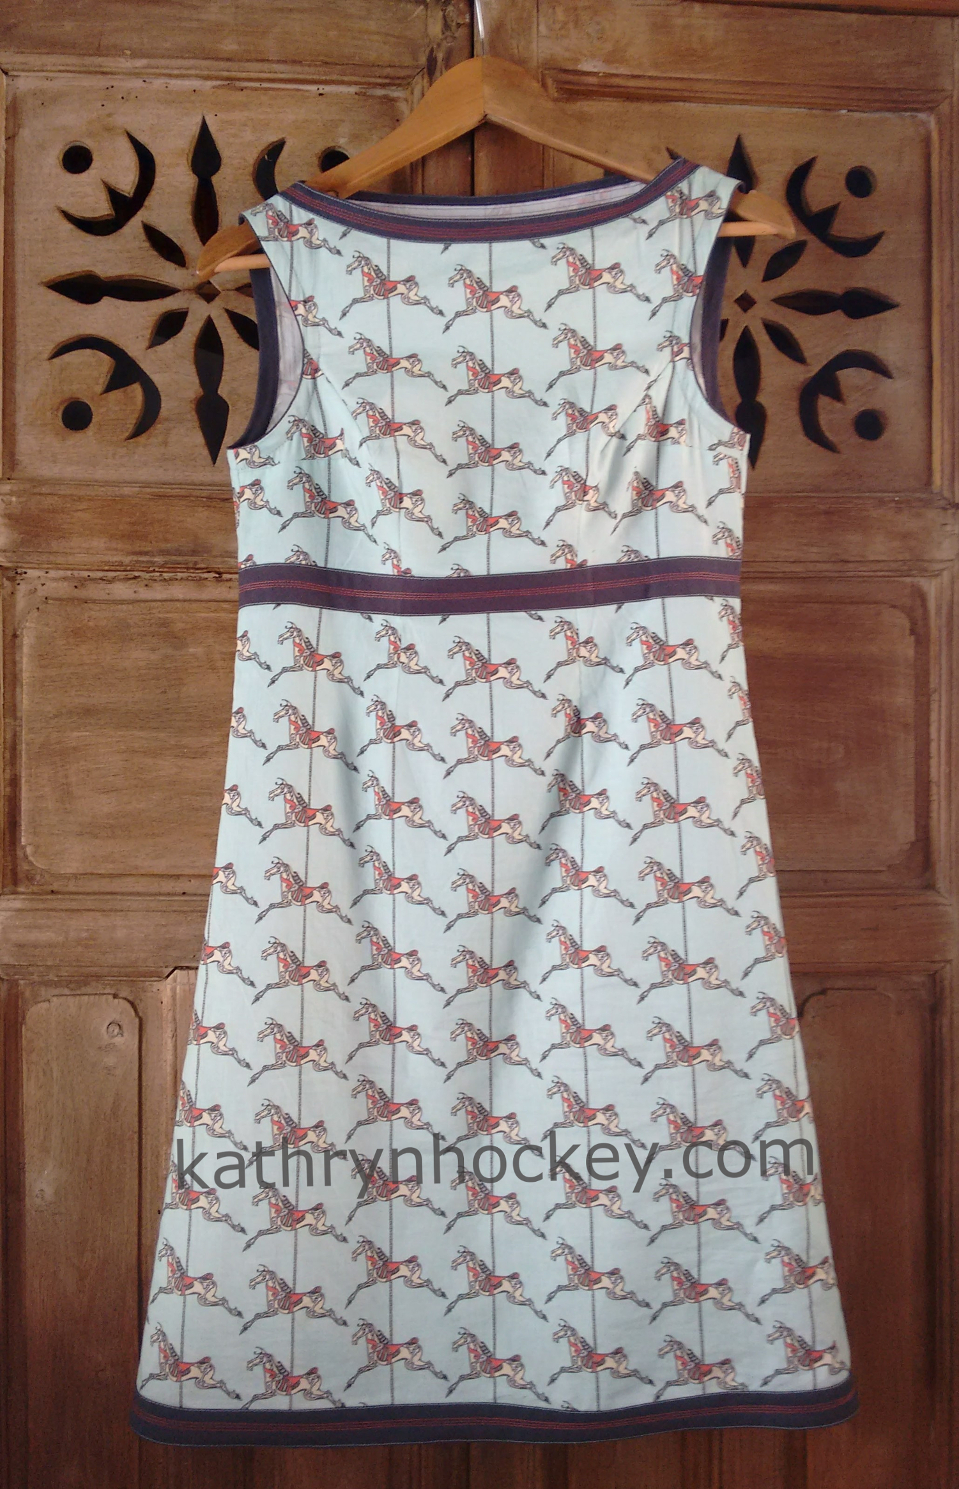 horse-dress-4-wm-kathryn-hockey-artist-illustrator